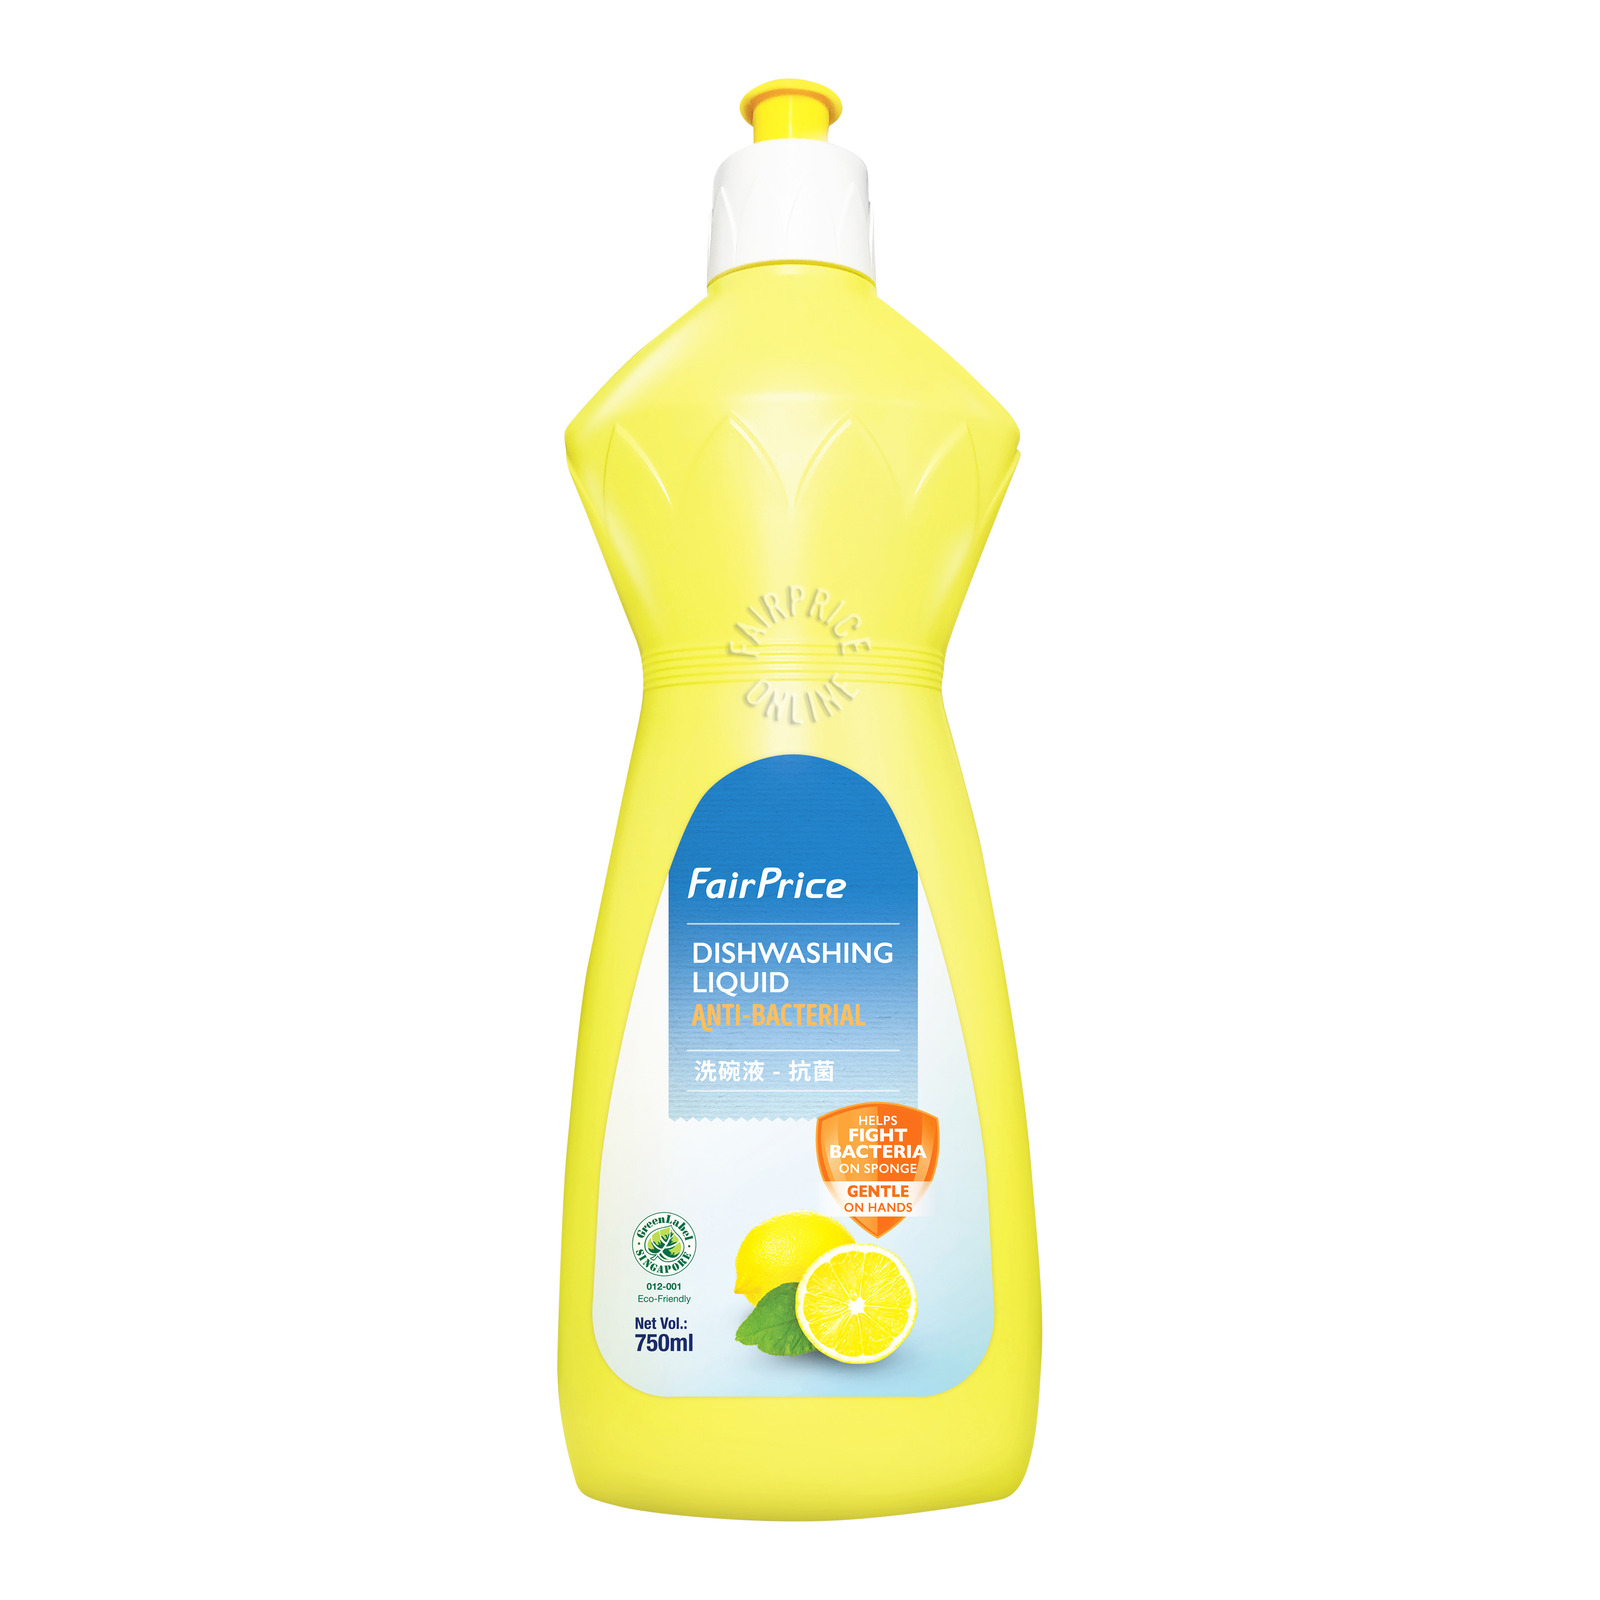 FairPrice Dishwashing Liquid Detergent - Anti-Bacterial